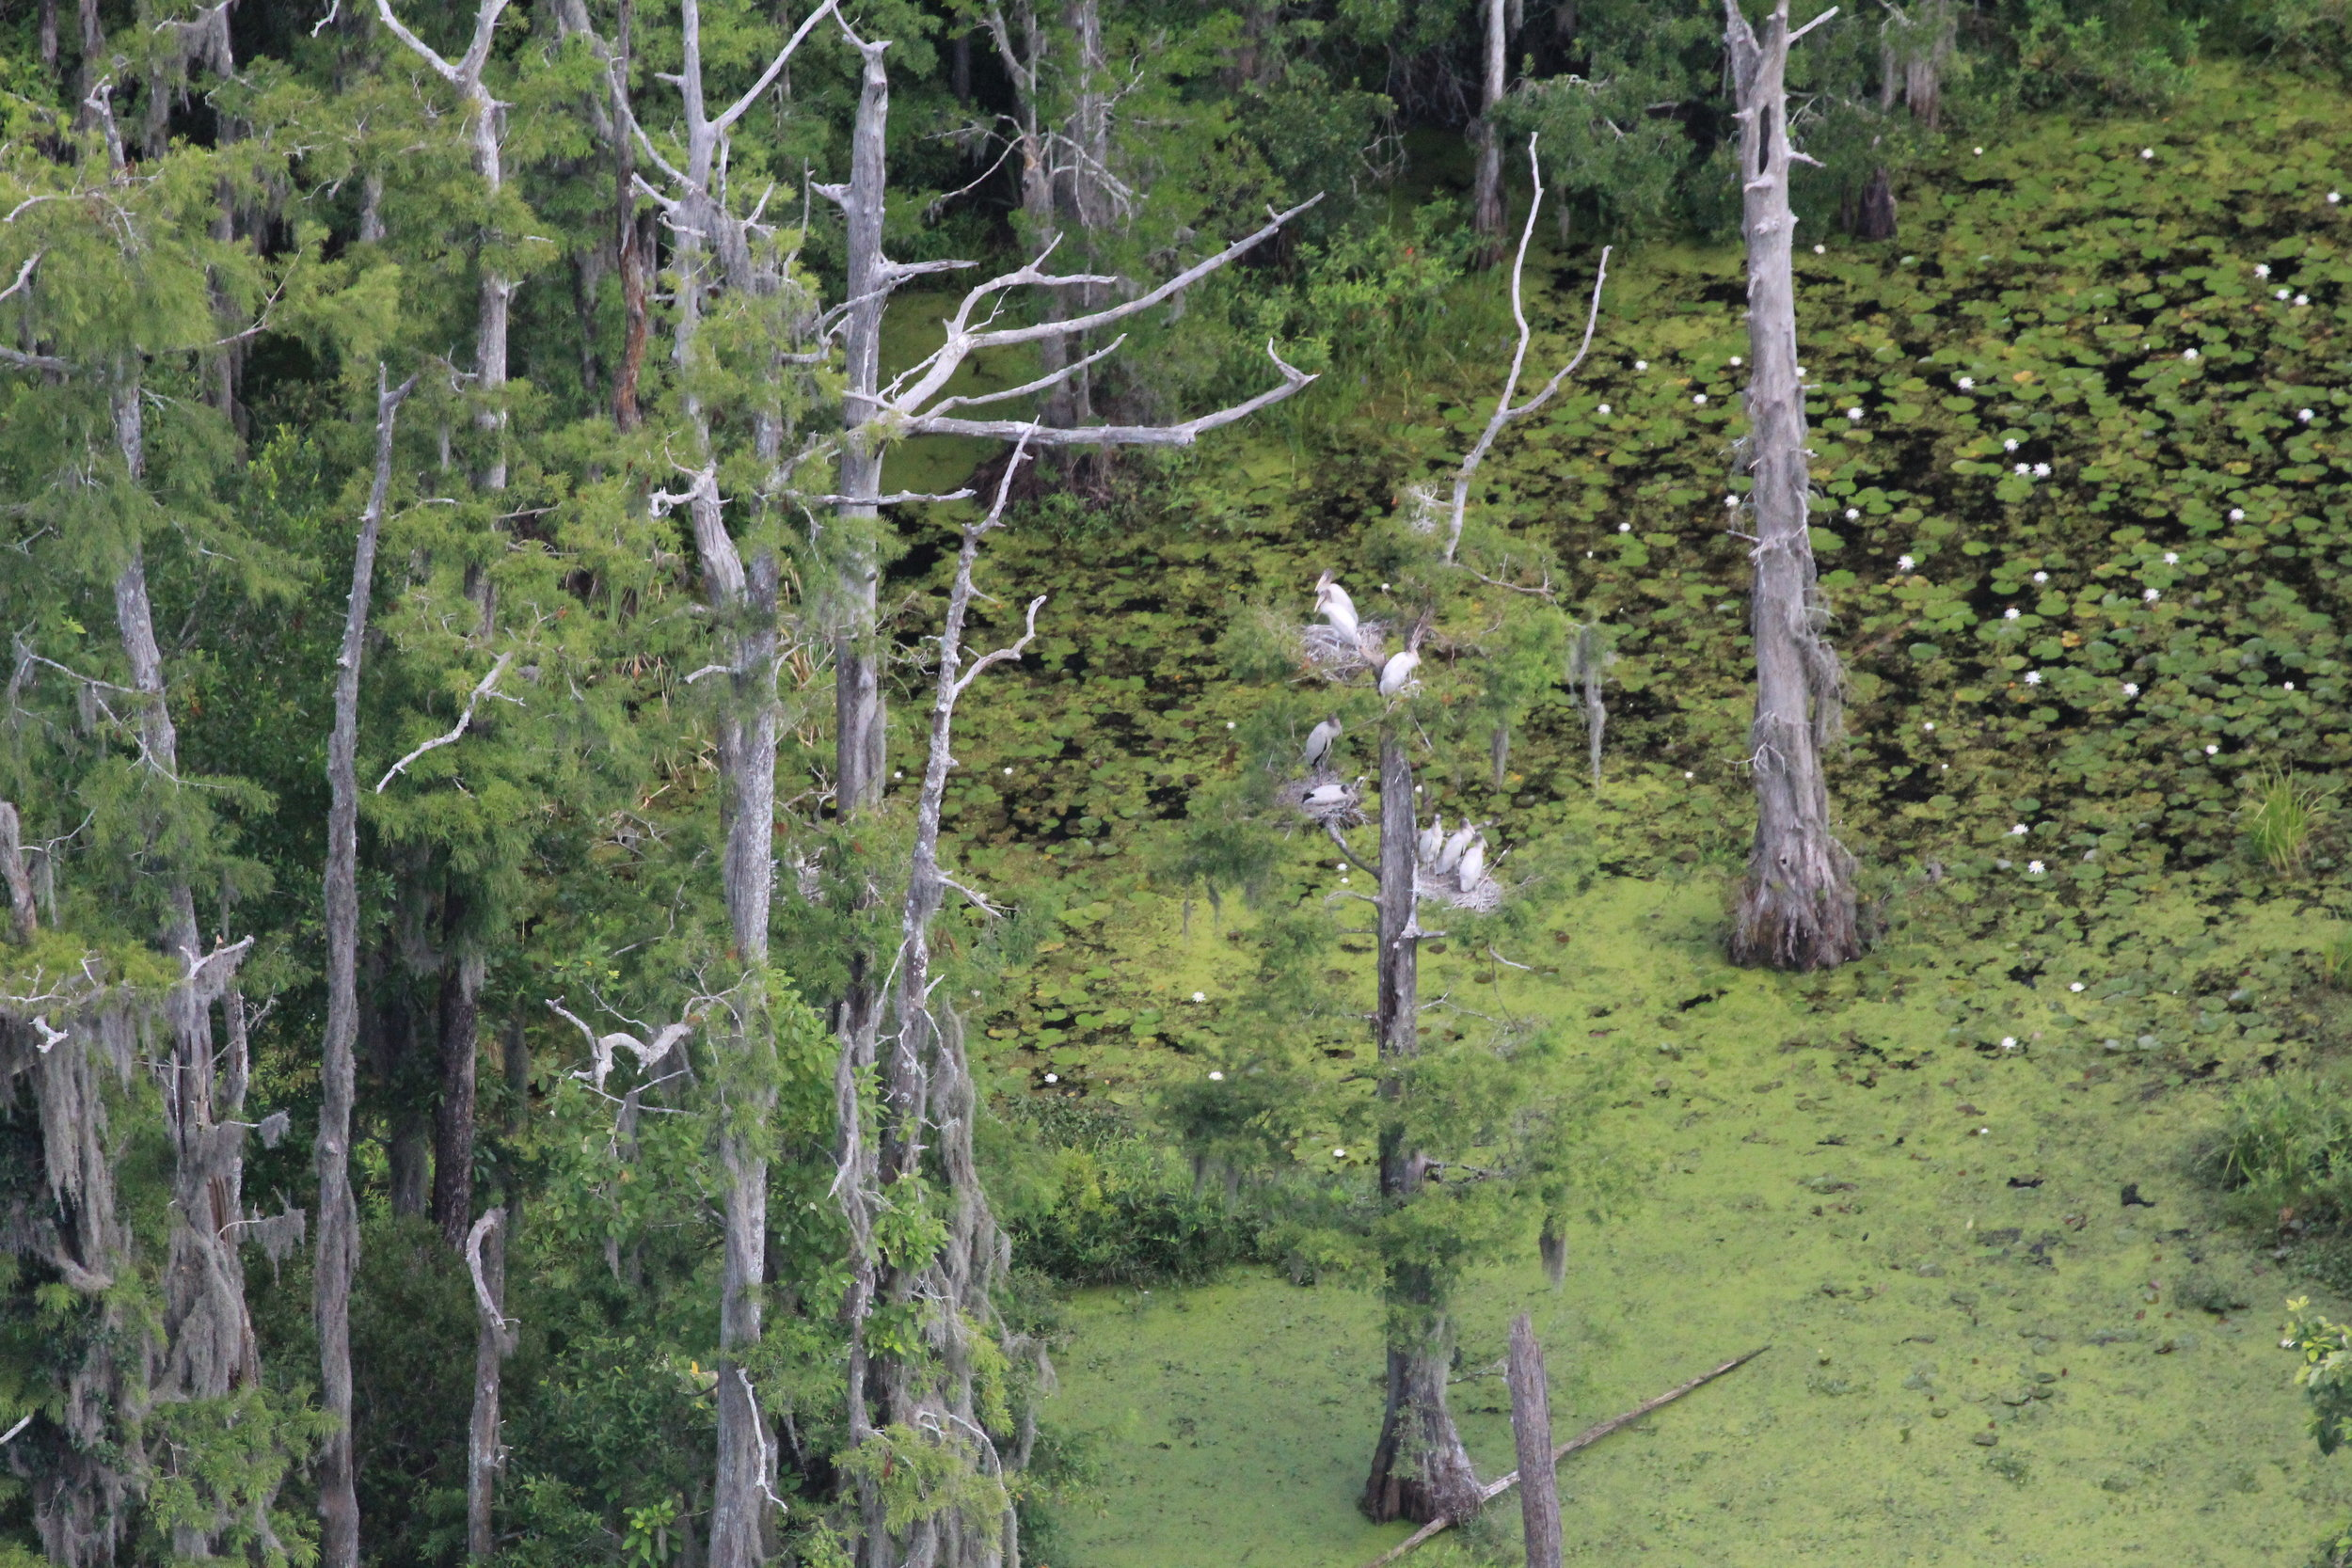 Pretty as a picture:wood stork chicks sit on their nests in a bald cypress tree at Washo Reserve, a property owned by the Nature Conservancy and jointly managed by SCDNR. (Photo: Christy Hand)